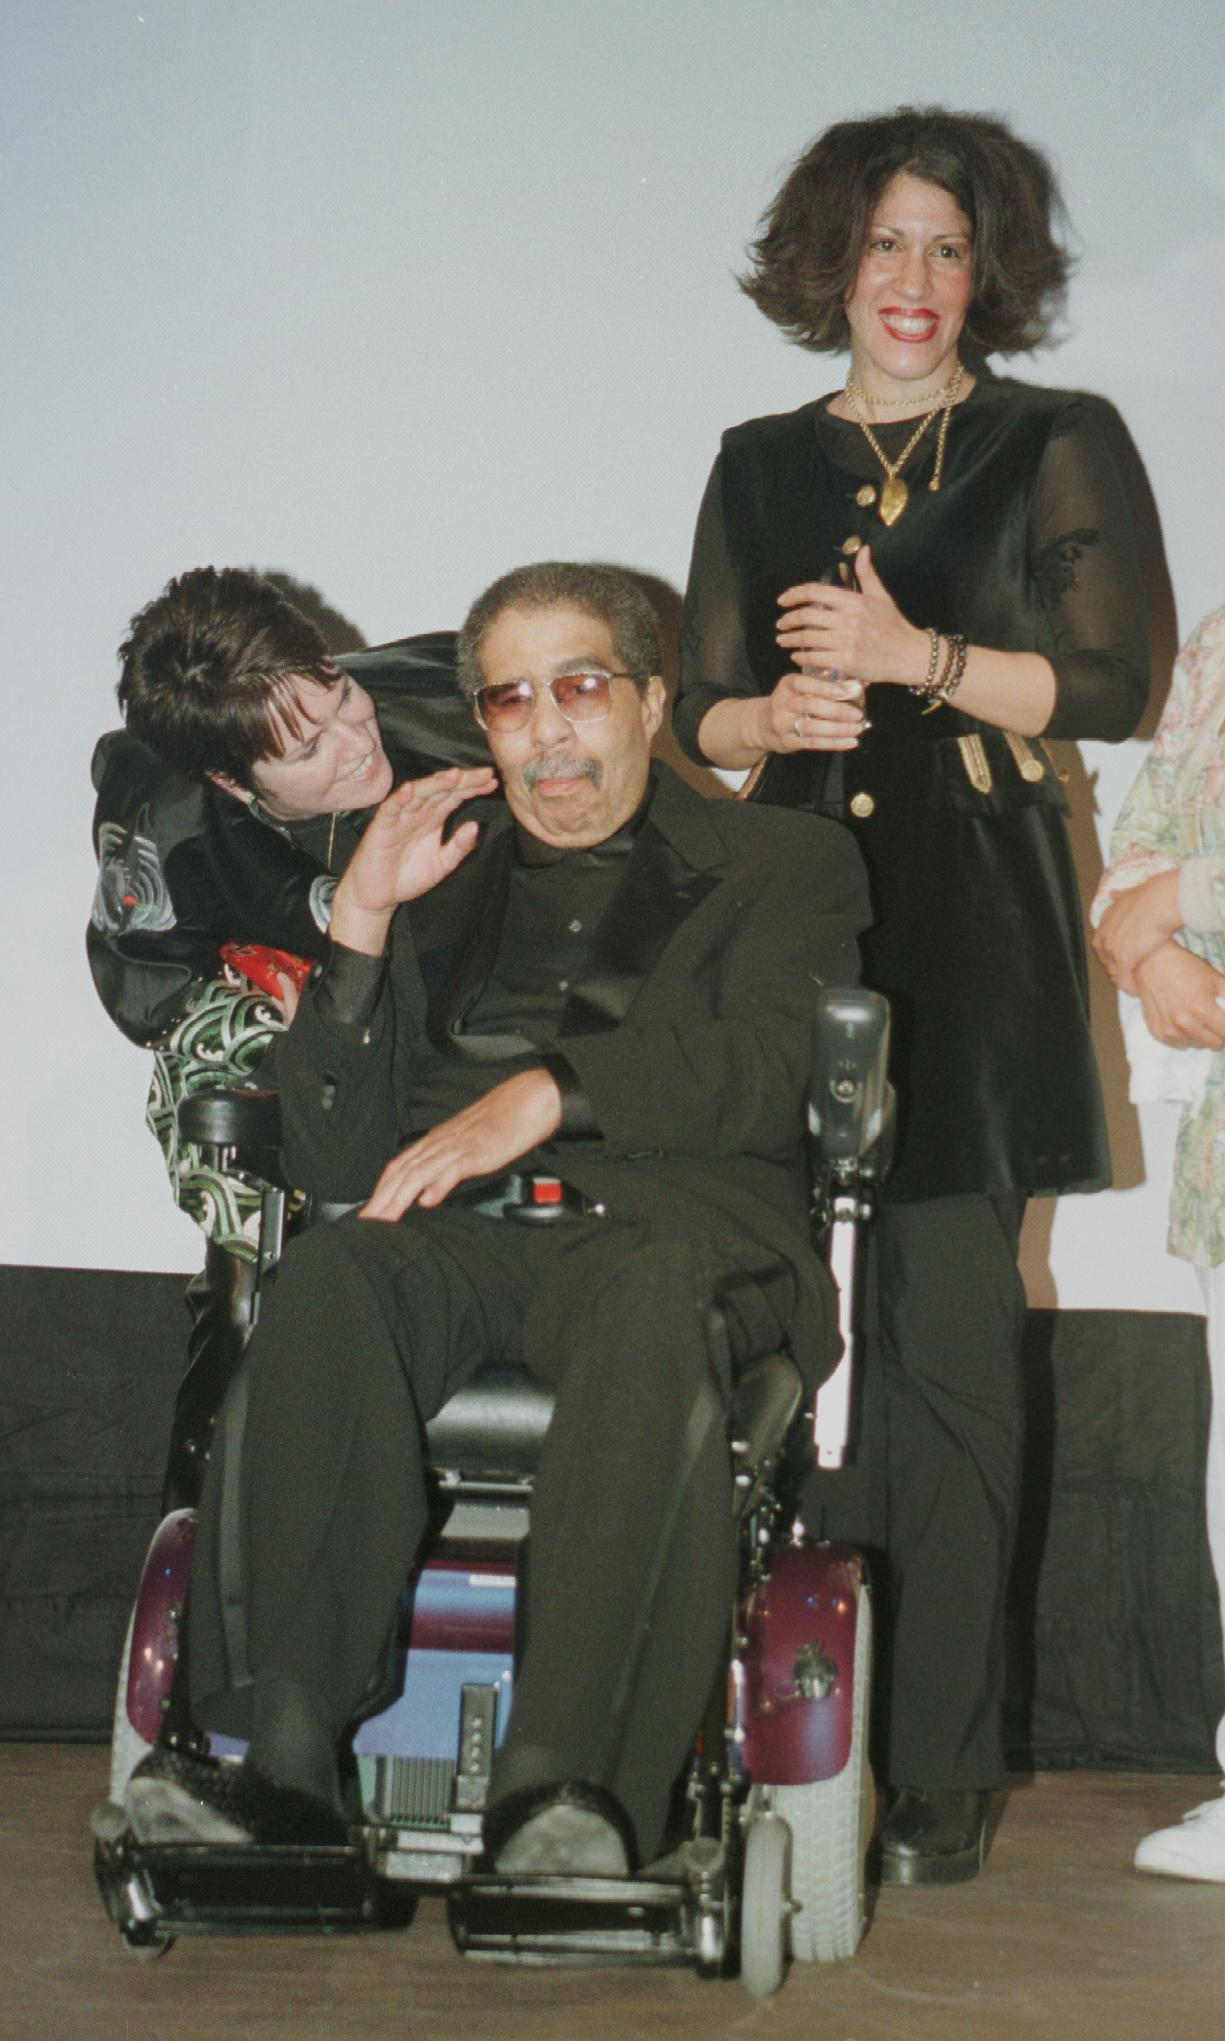 3-3-00, Santa Barbara, Ca. Richard Pryor Accepts The Lifetime Achievement Award As Wife Jennifer And Daughter Rain Stand With Him During The Santa Barbara International Film Festival At The Granada Theatre. (Photo By Dave Luchansky/Getty Images)